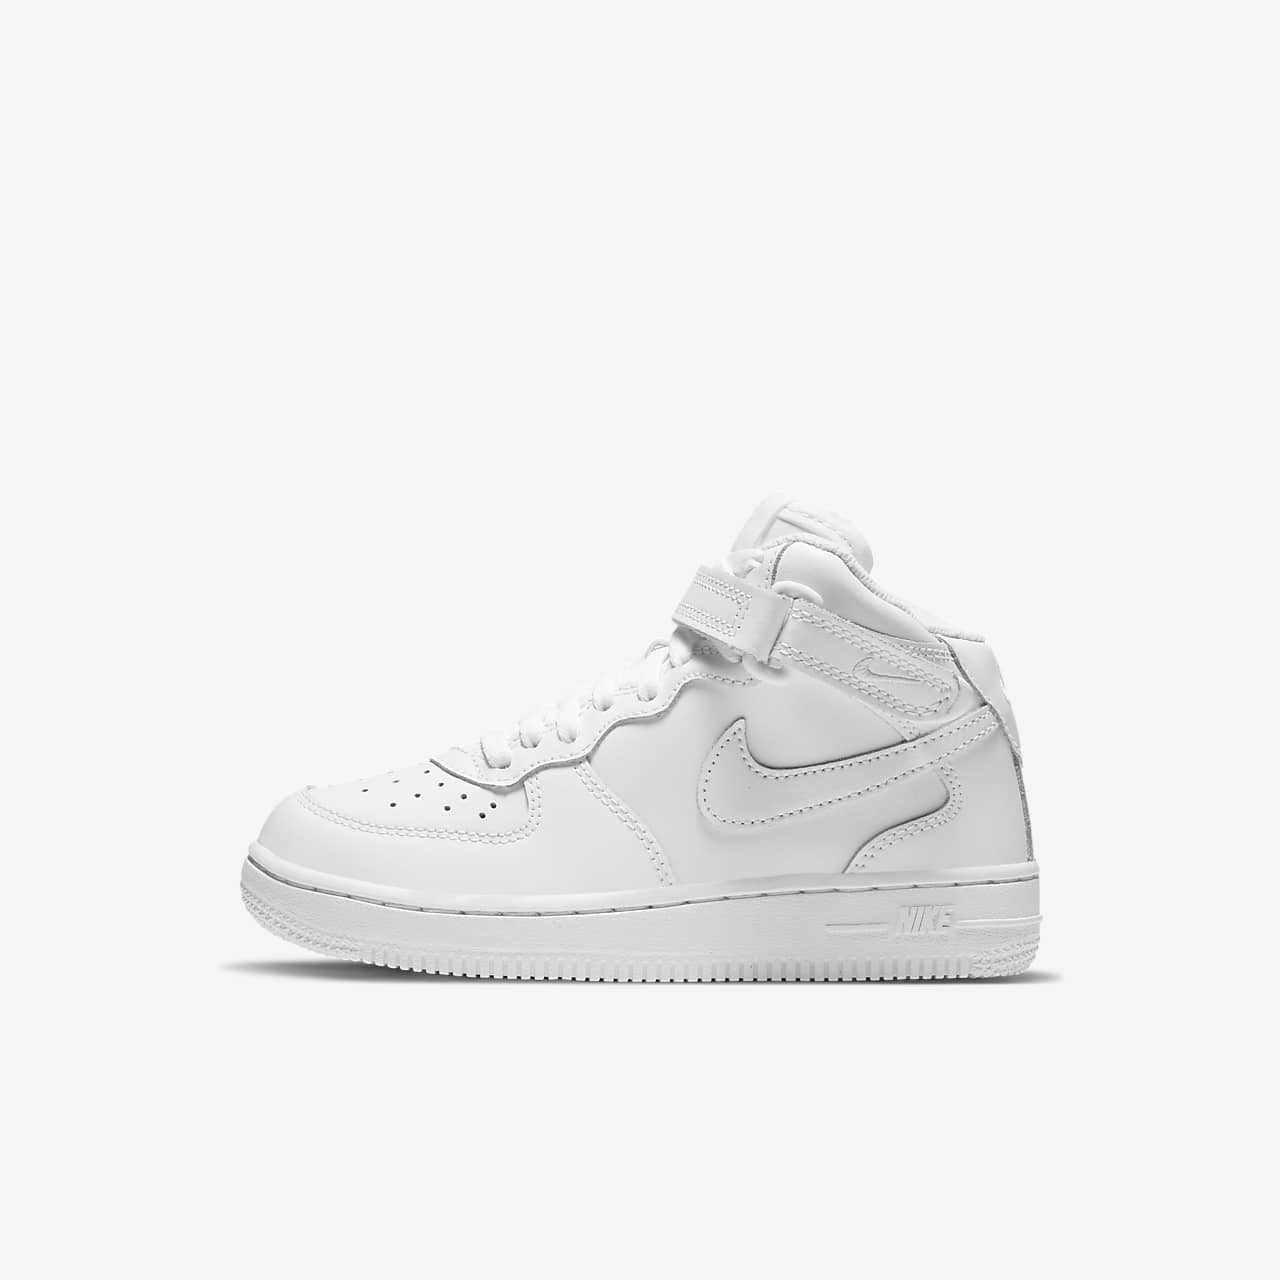 569fccdb02b Nike Air Force 1 Mid Little Kids  Shoe. Nike.com